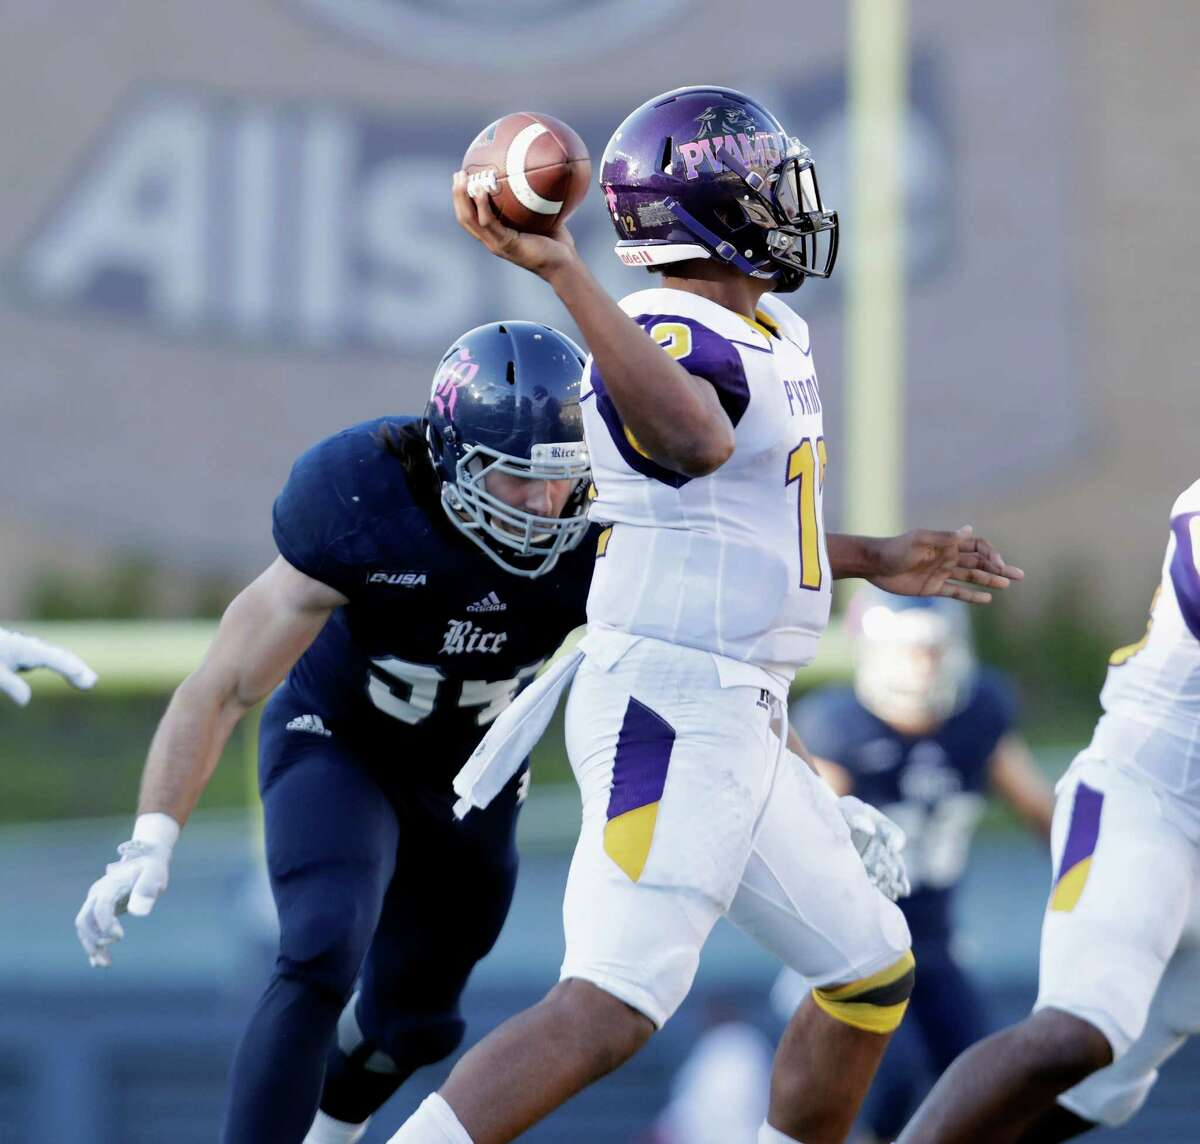 Prairie View A&M Panthers quarterback Jalen Morton (12) is pressured by Rice Owls defensive end Graysen Schantz (94) as he looks to pass in the fourth quarter during the NCAA football game between the Prairie View A&M Panthers and the Rice Owls at Rice Stadium in Houston, TX on Saturday, October 22, 2016. The Owls defeated the Panthers 65-44.